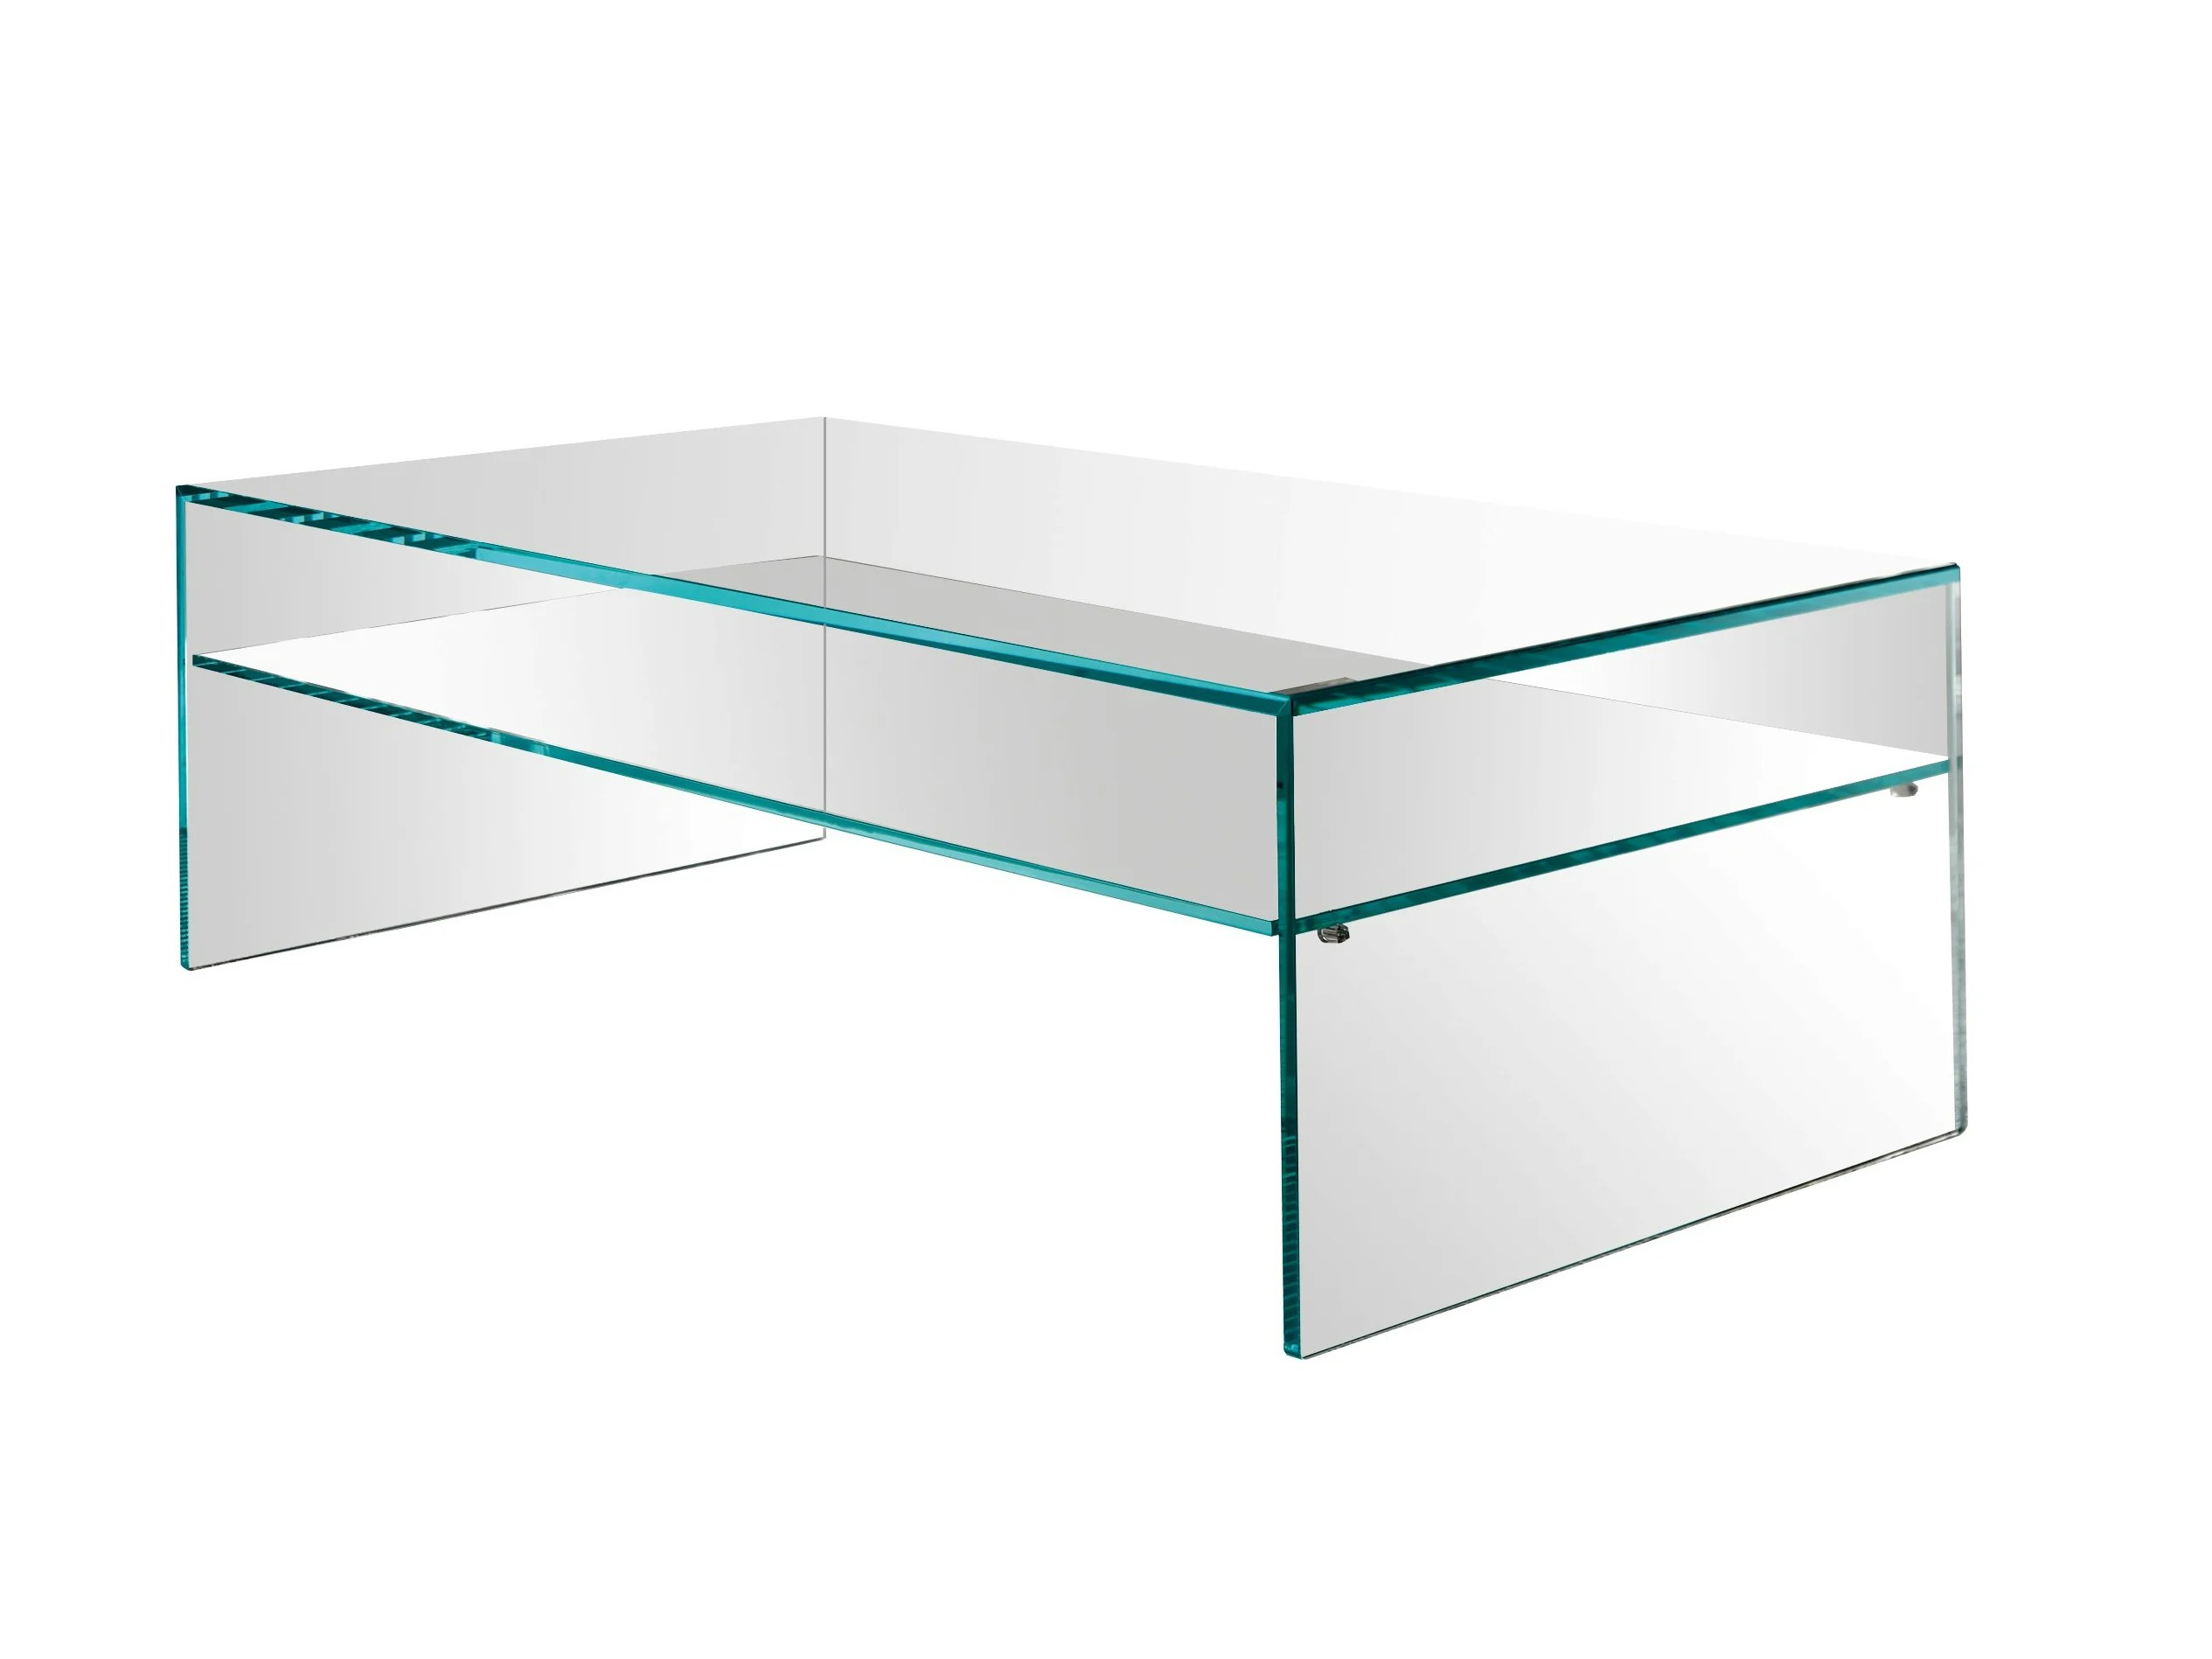 Glas Couchtisch Rechteckig Rectangular Glass Coffee Table Fratina Due By T.d. Tonelli